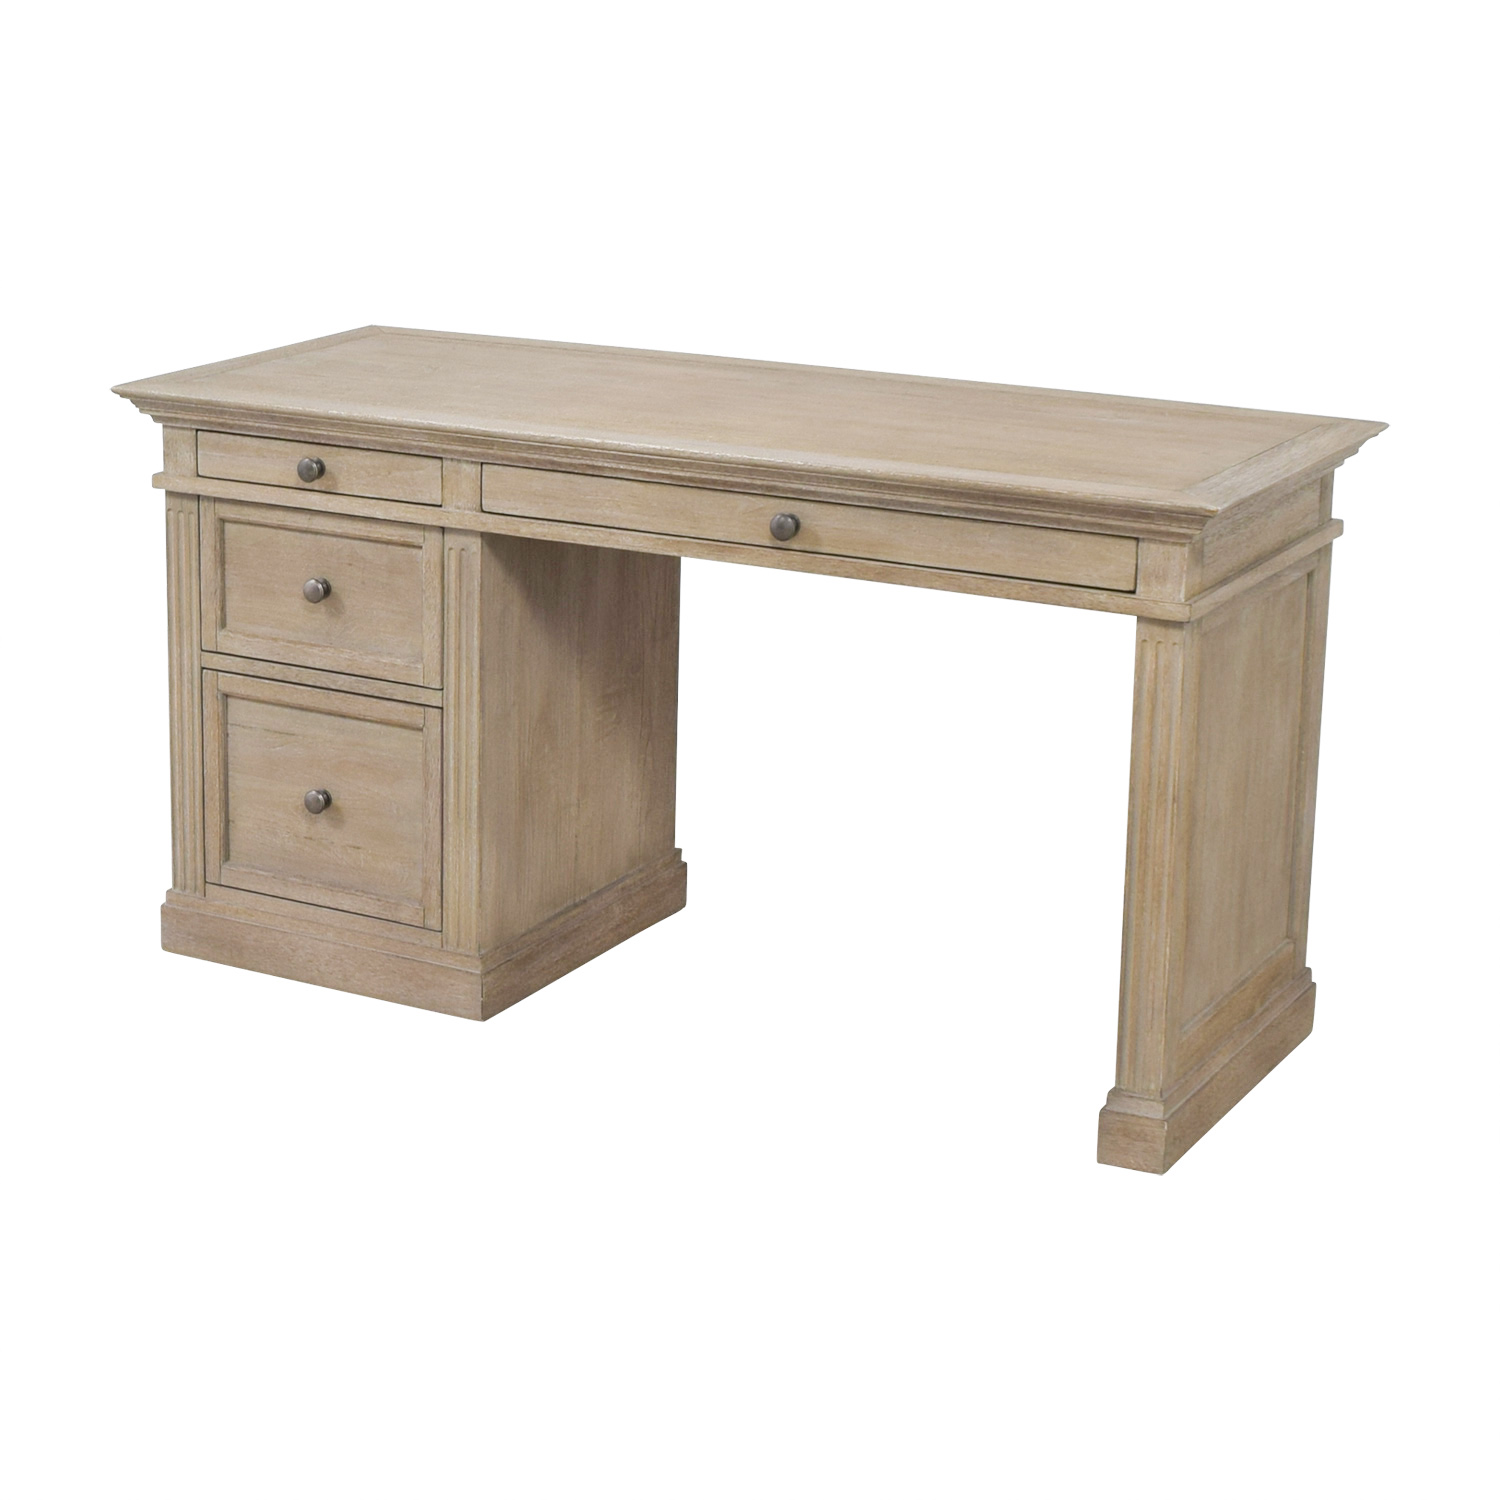 shop Pottery Barn Pottery Barn Livingston Gray Wash Four-Drawer Desk online